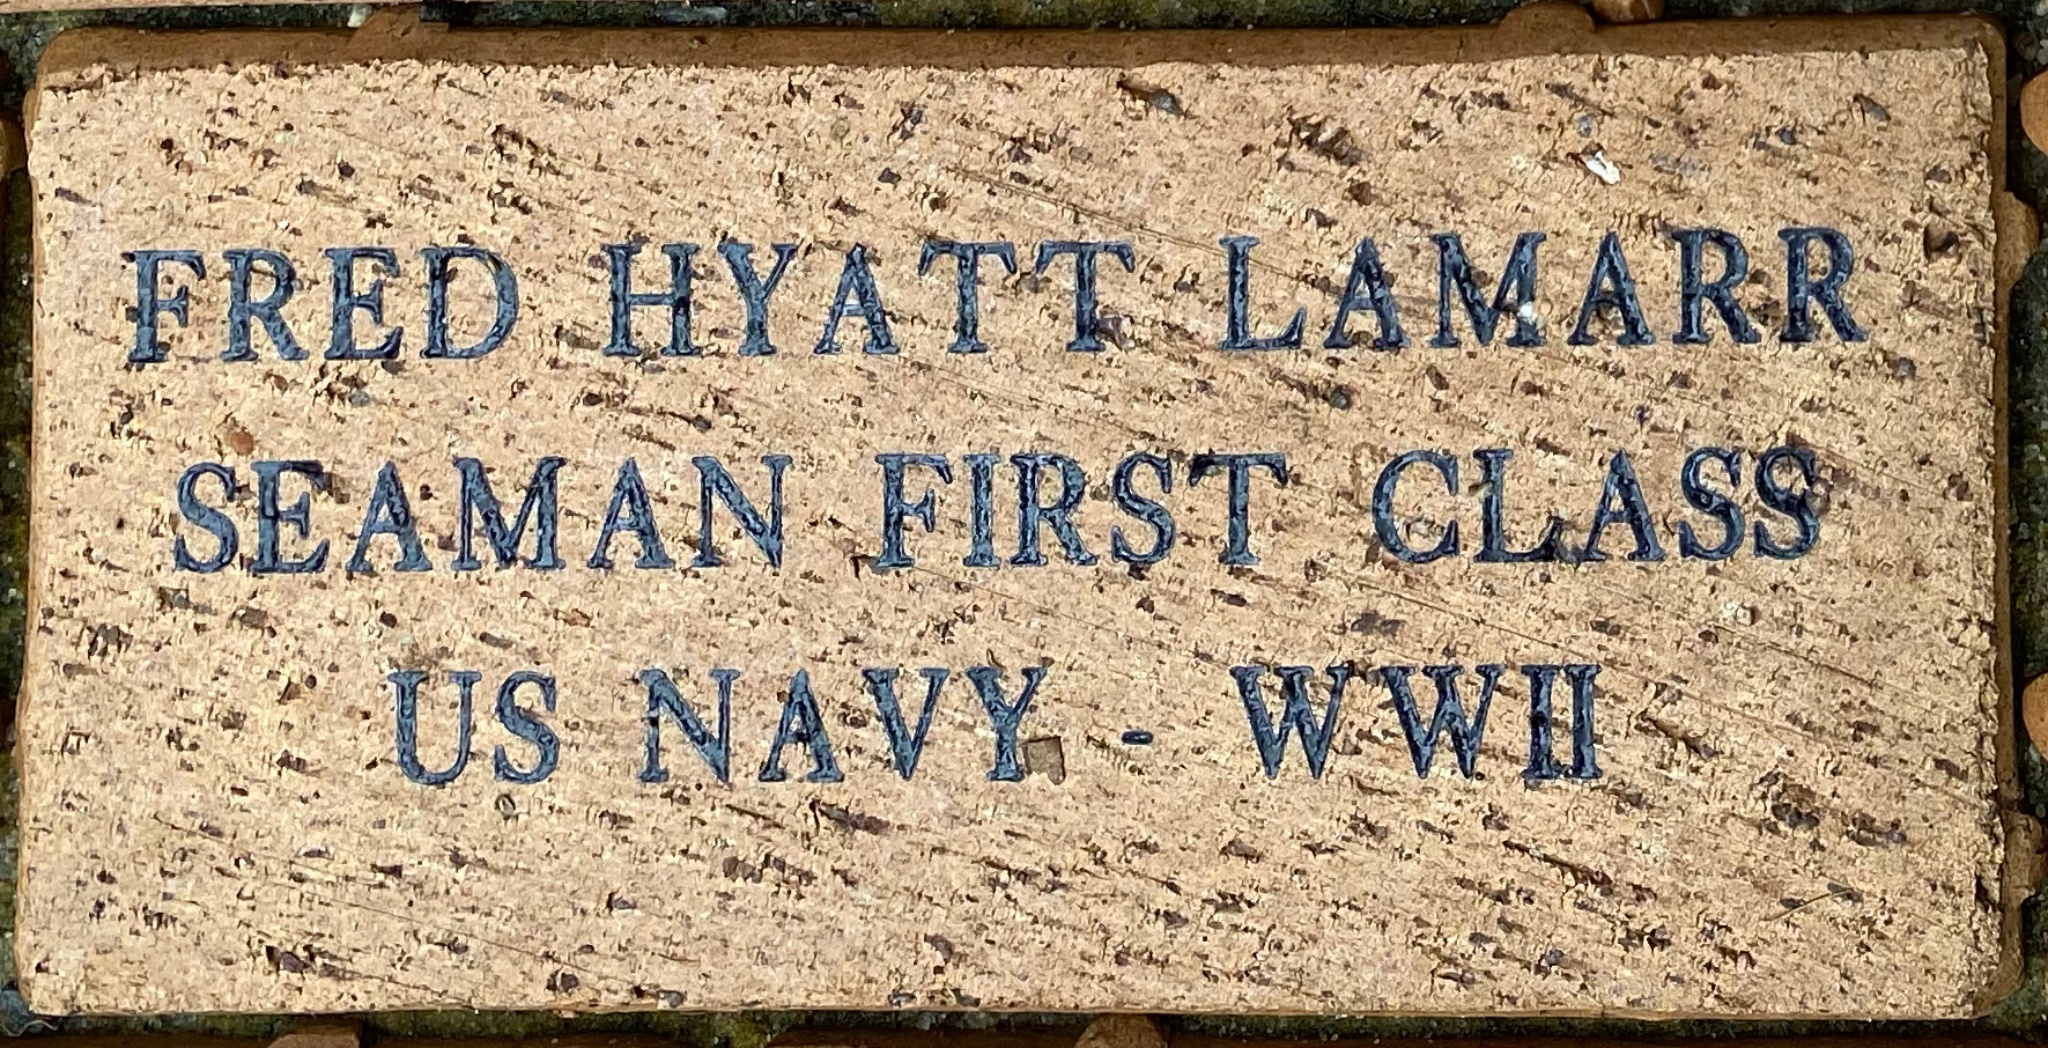 FRED HYATT LAMARR SEAMAN FIRST CLASS US NAVY – WWII